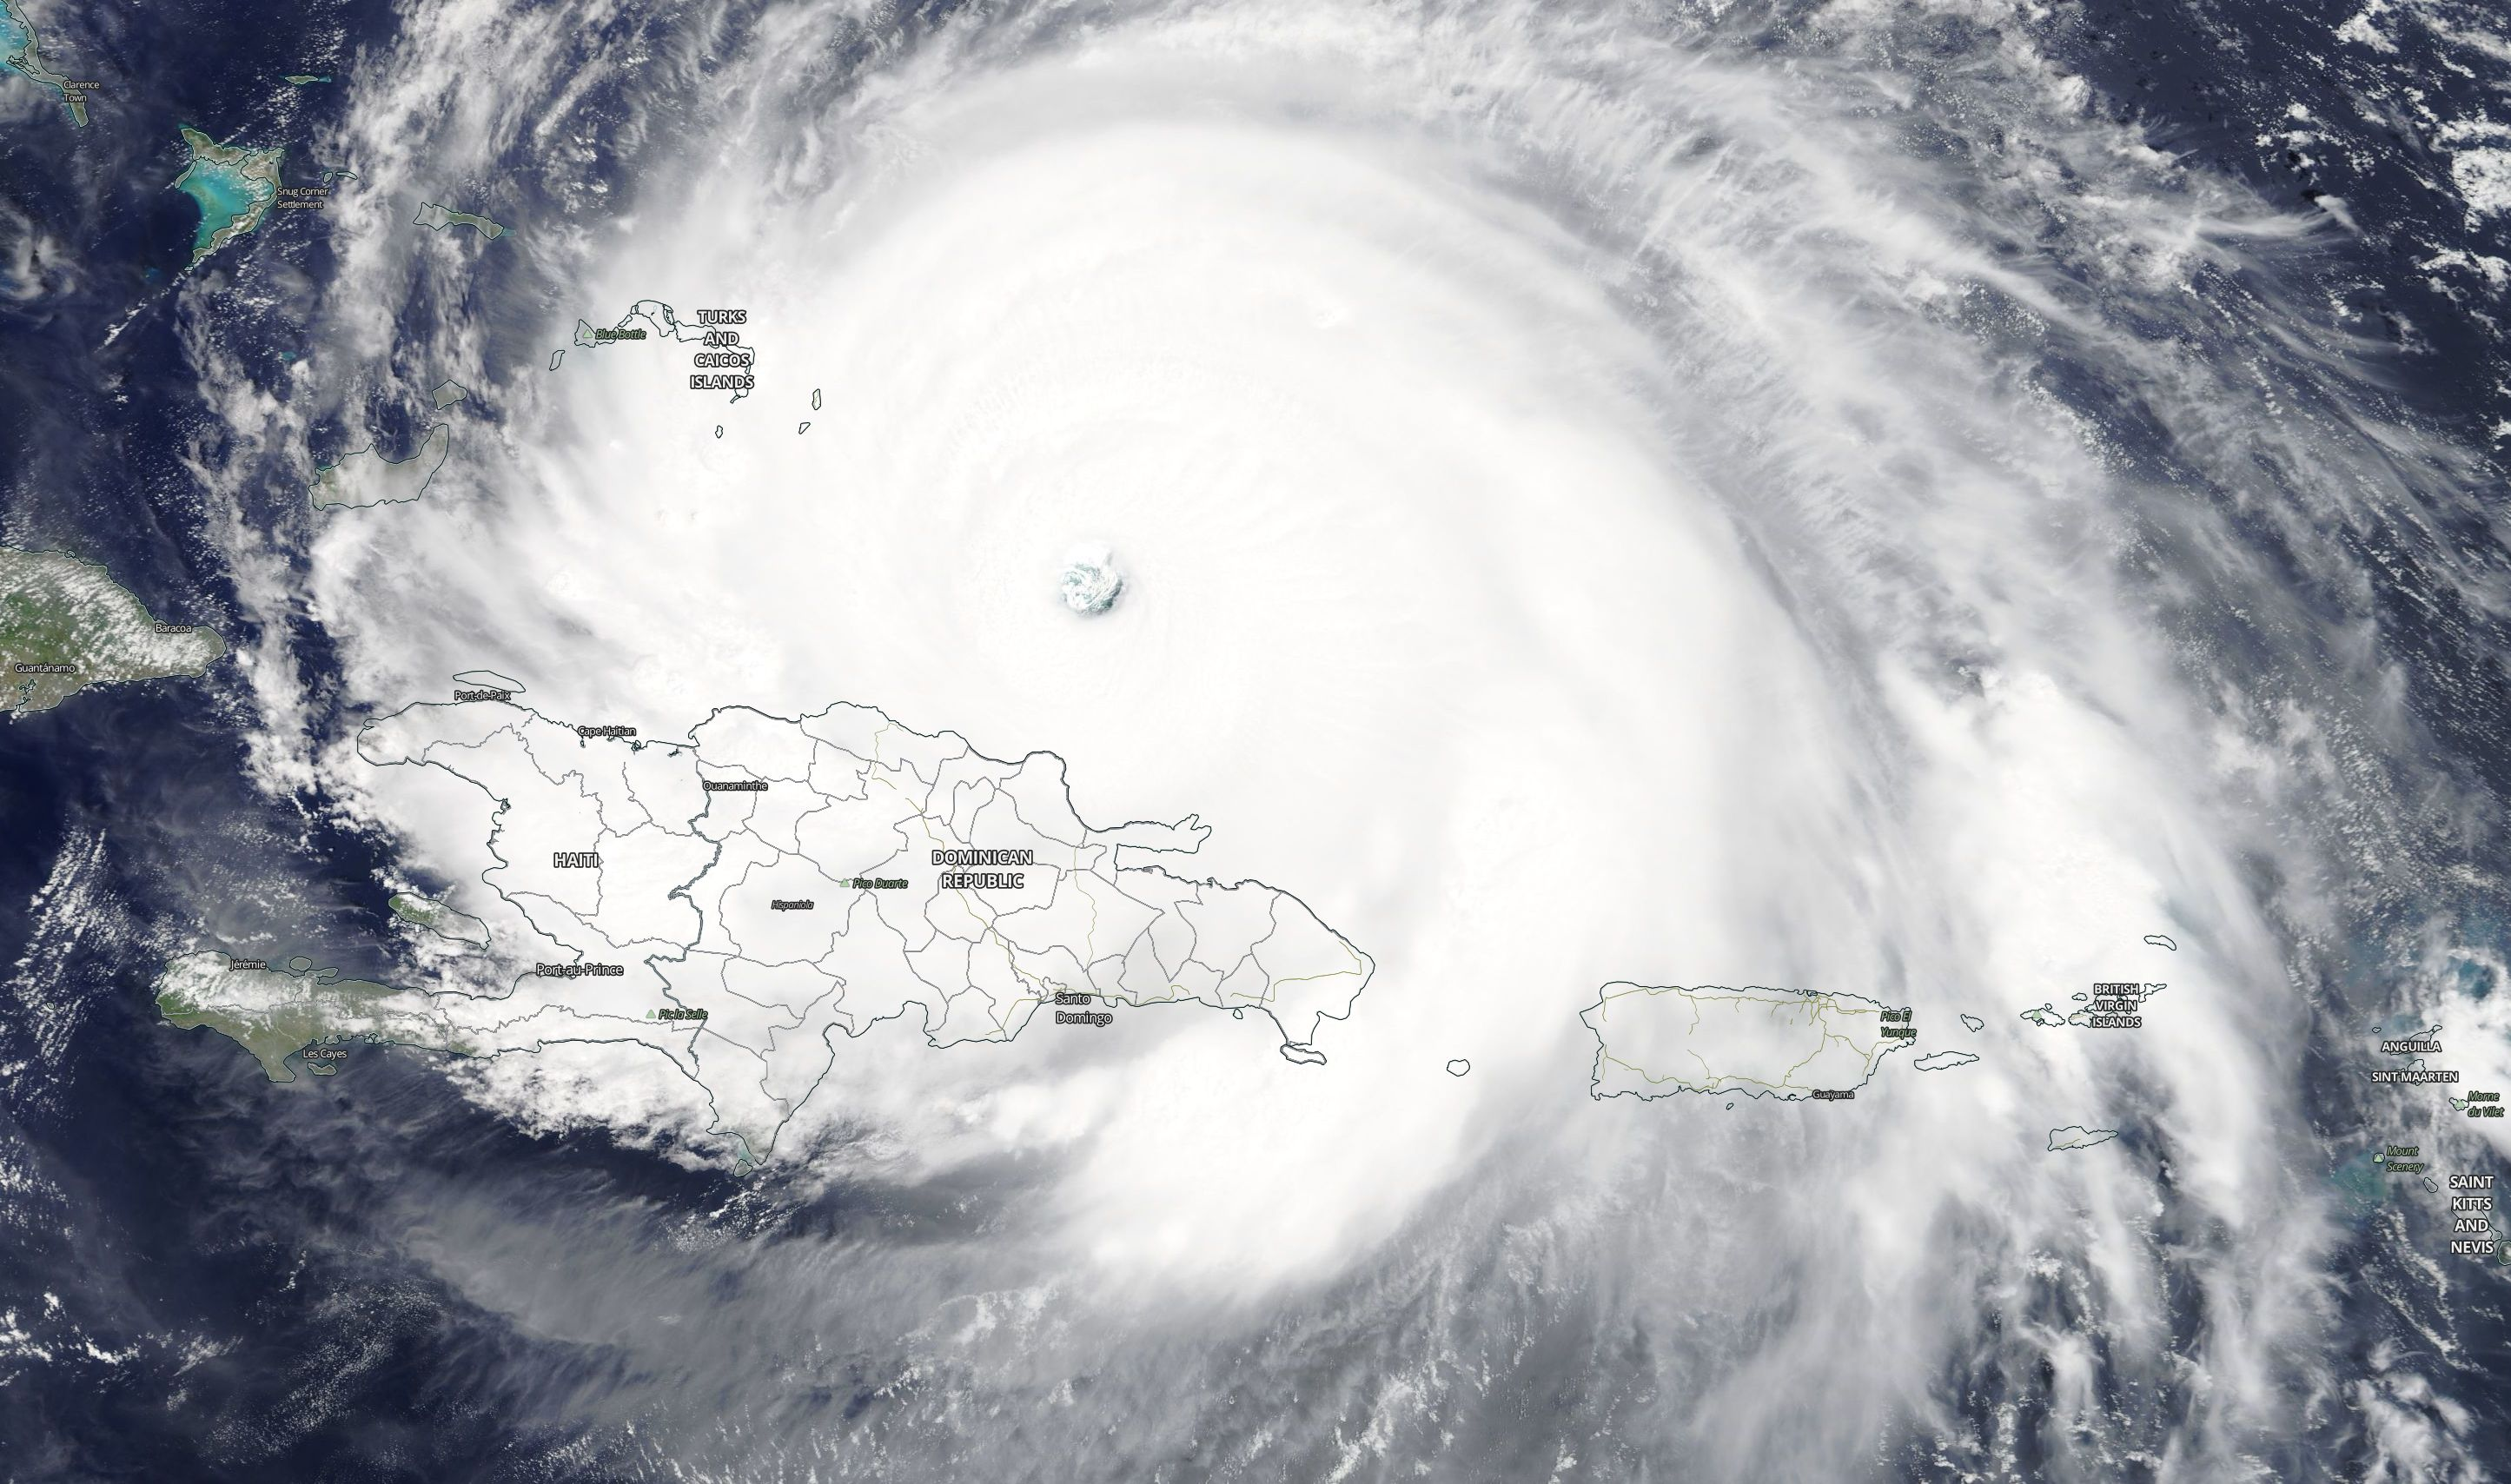 Hurricane Irma as seen on Sept. 7, 2017 (Photo: NASA/MODIS Satellite Image)